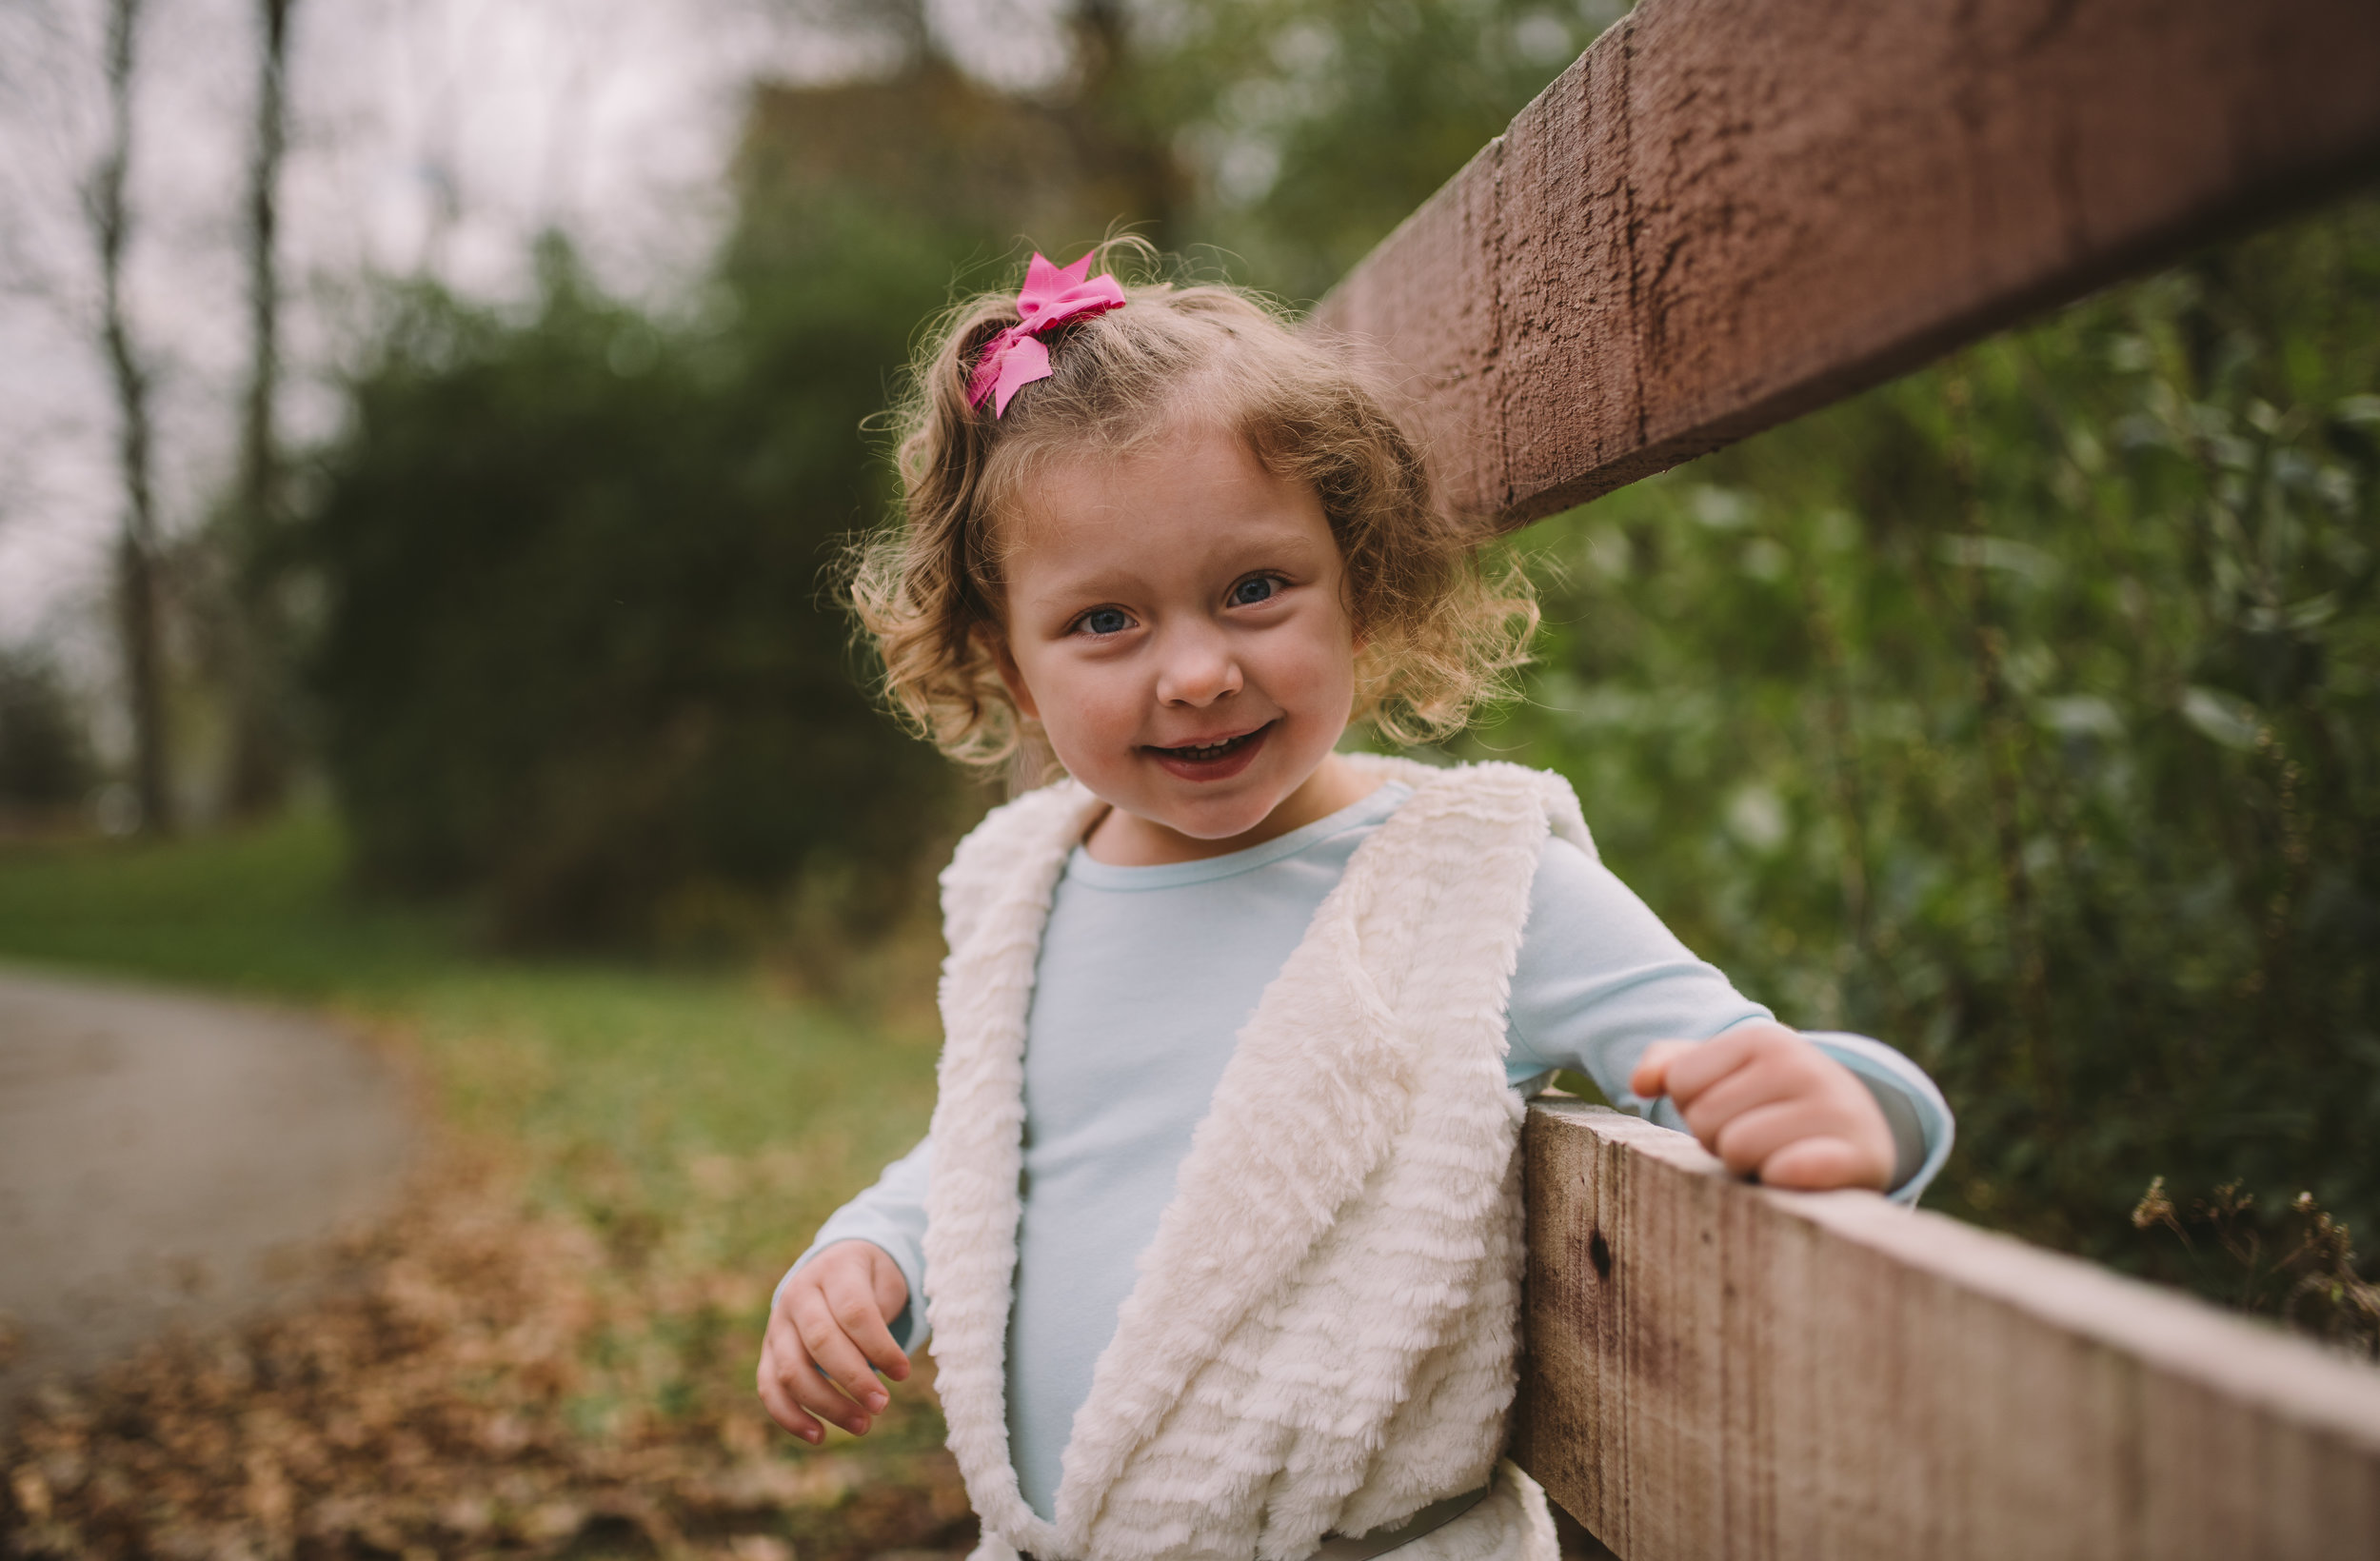 Addi_3rdBirthdayPortraits_Ohio_November2017_Portrait Photography In Tempe_ArizonaPortraitPhotographer_SamanthaRosePhotography_final_046.JPG